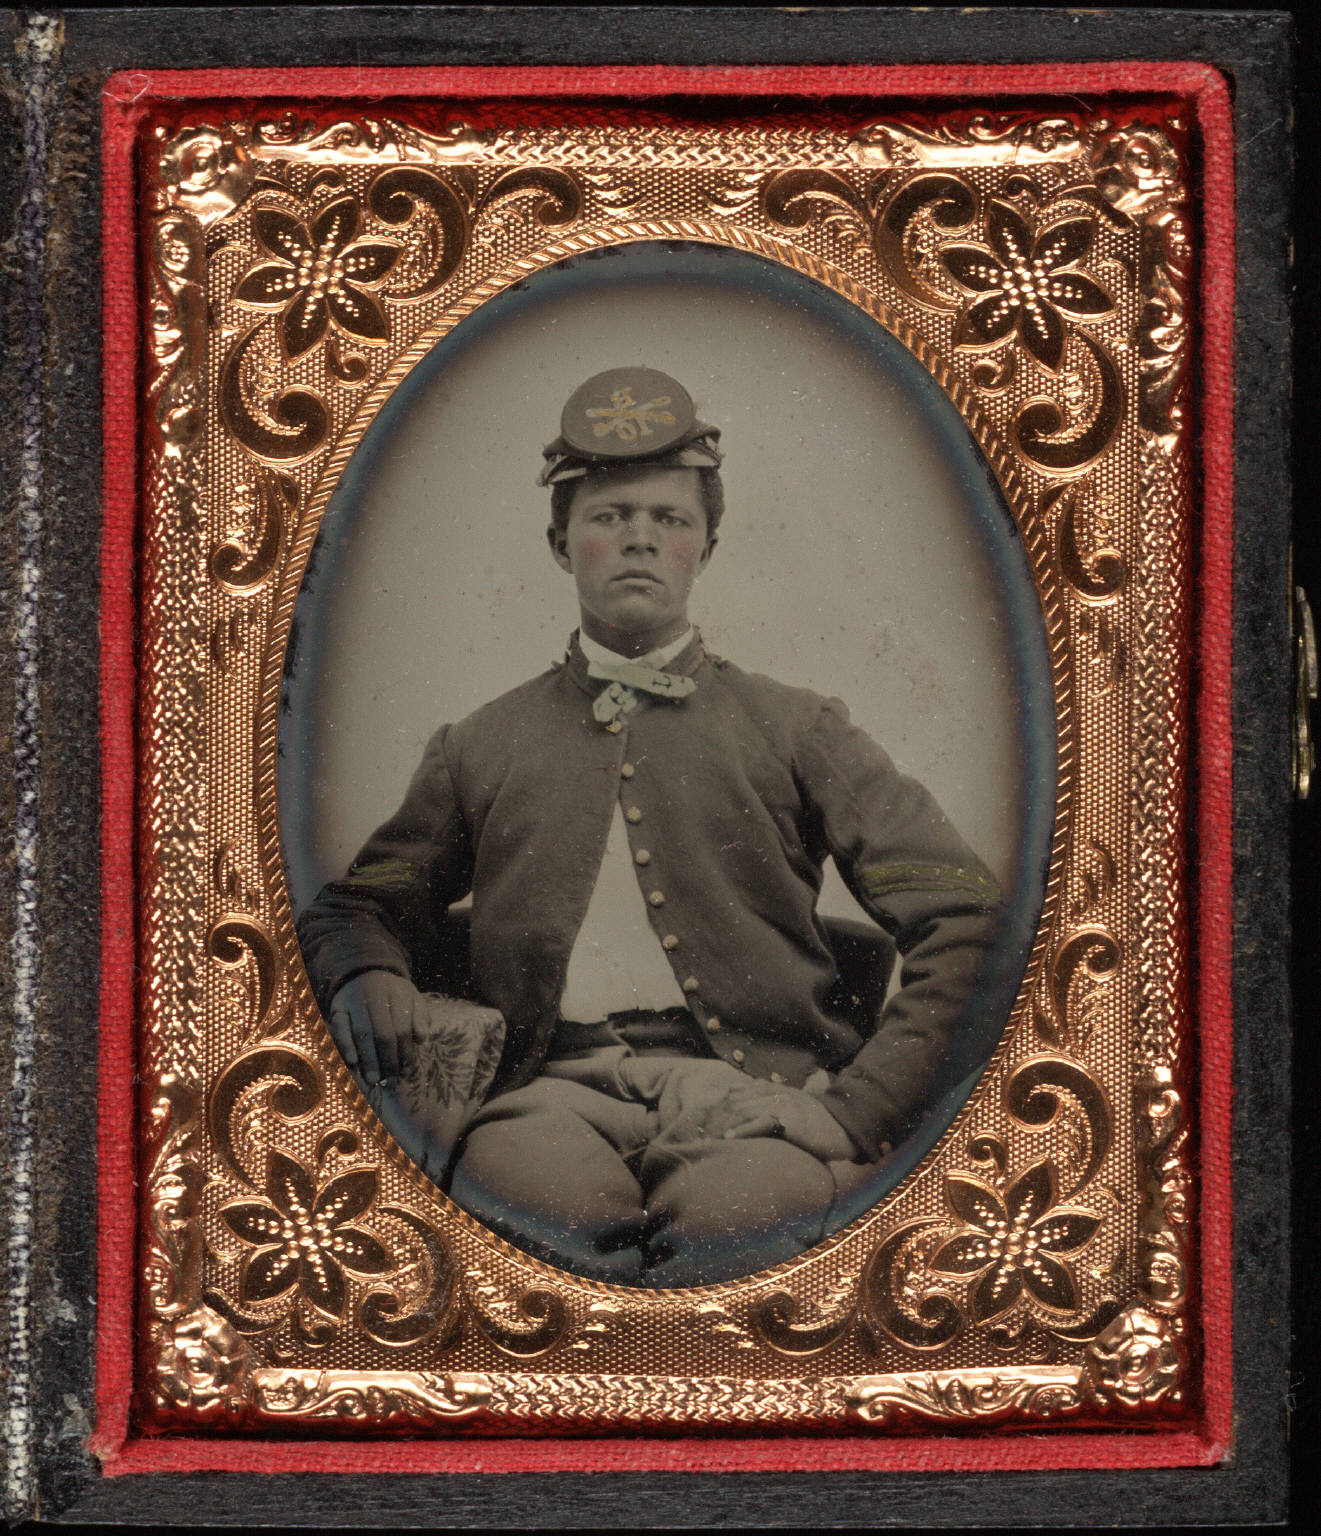 dating tintypes An interactive database of over 1,000 19th century photographs viewable by years, photograph type, and other reearch categories.